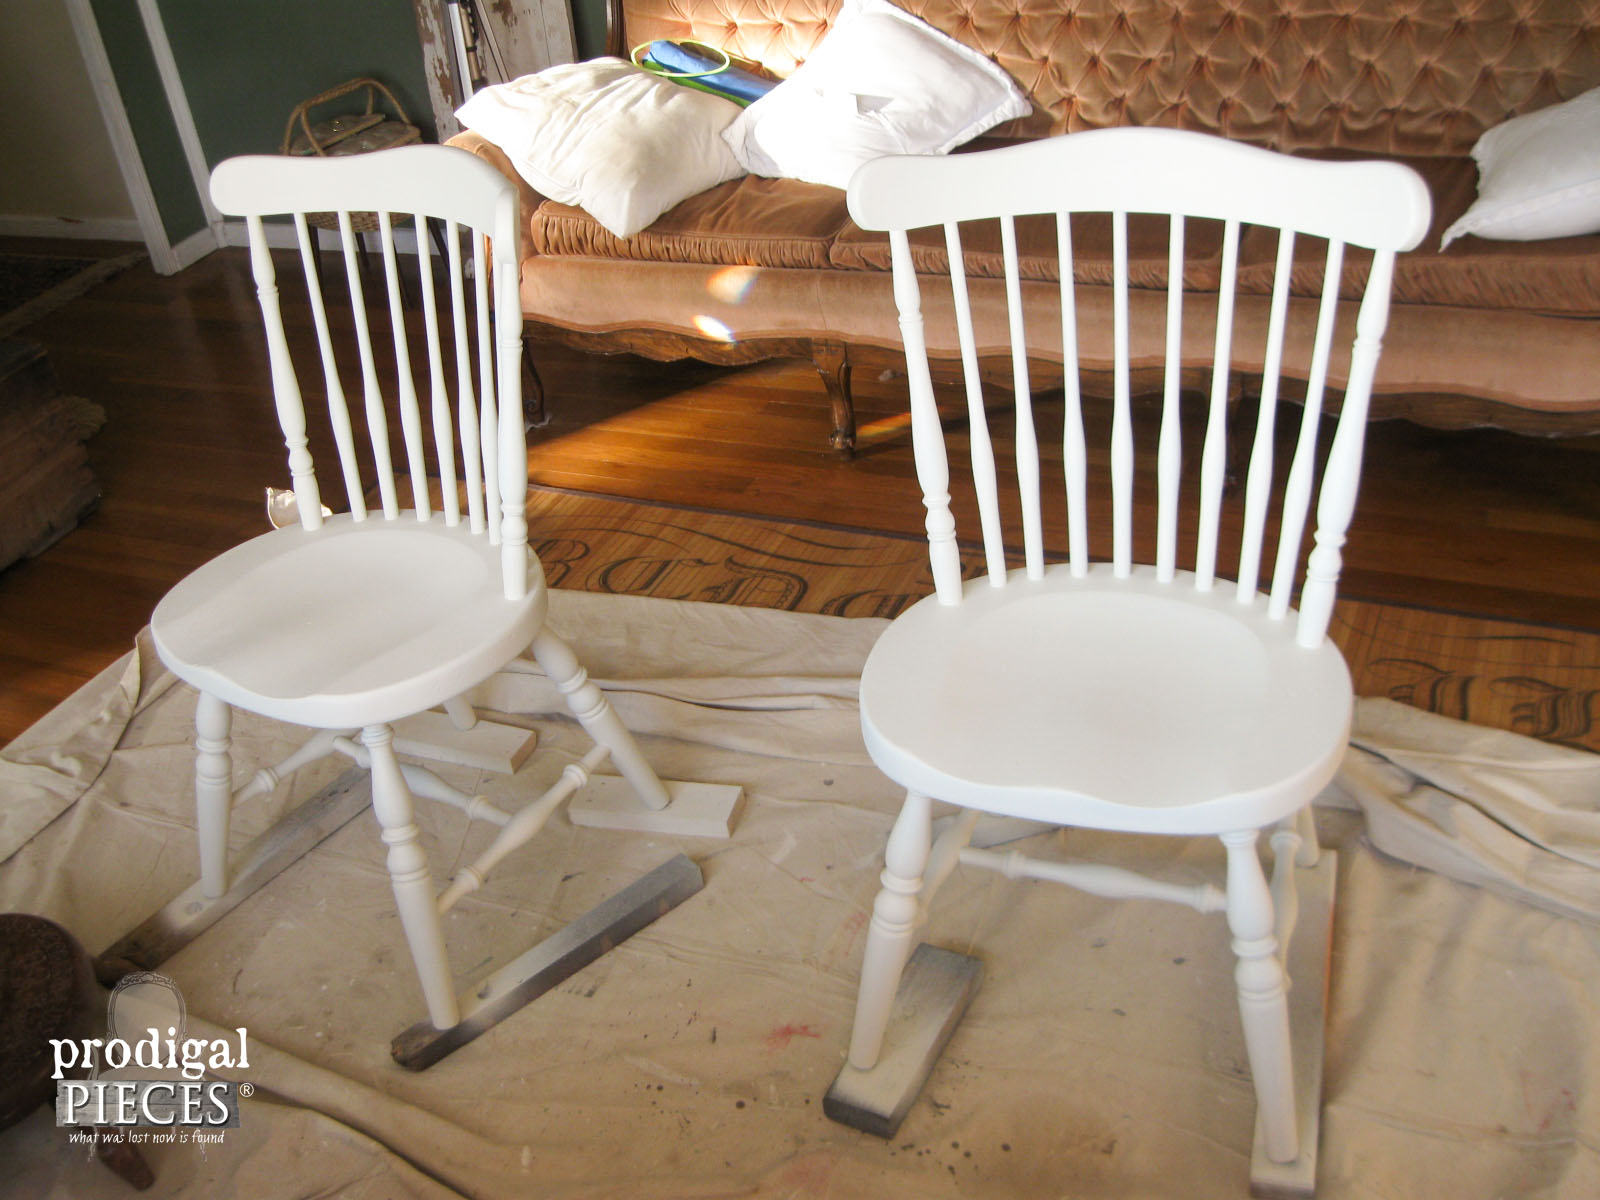 Vintage Chairs Painted White | Prodigal Pieces | www.prodigalpieces.com